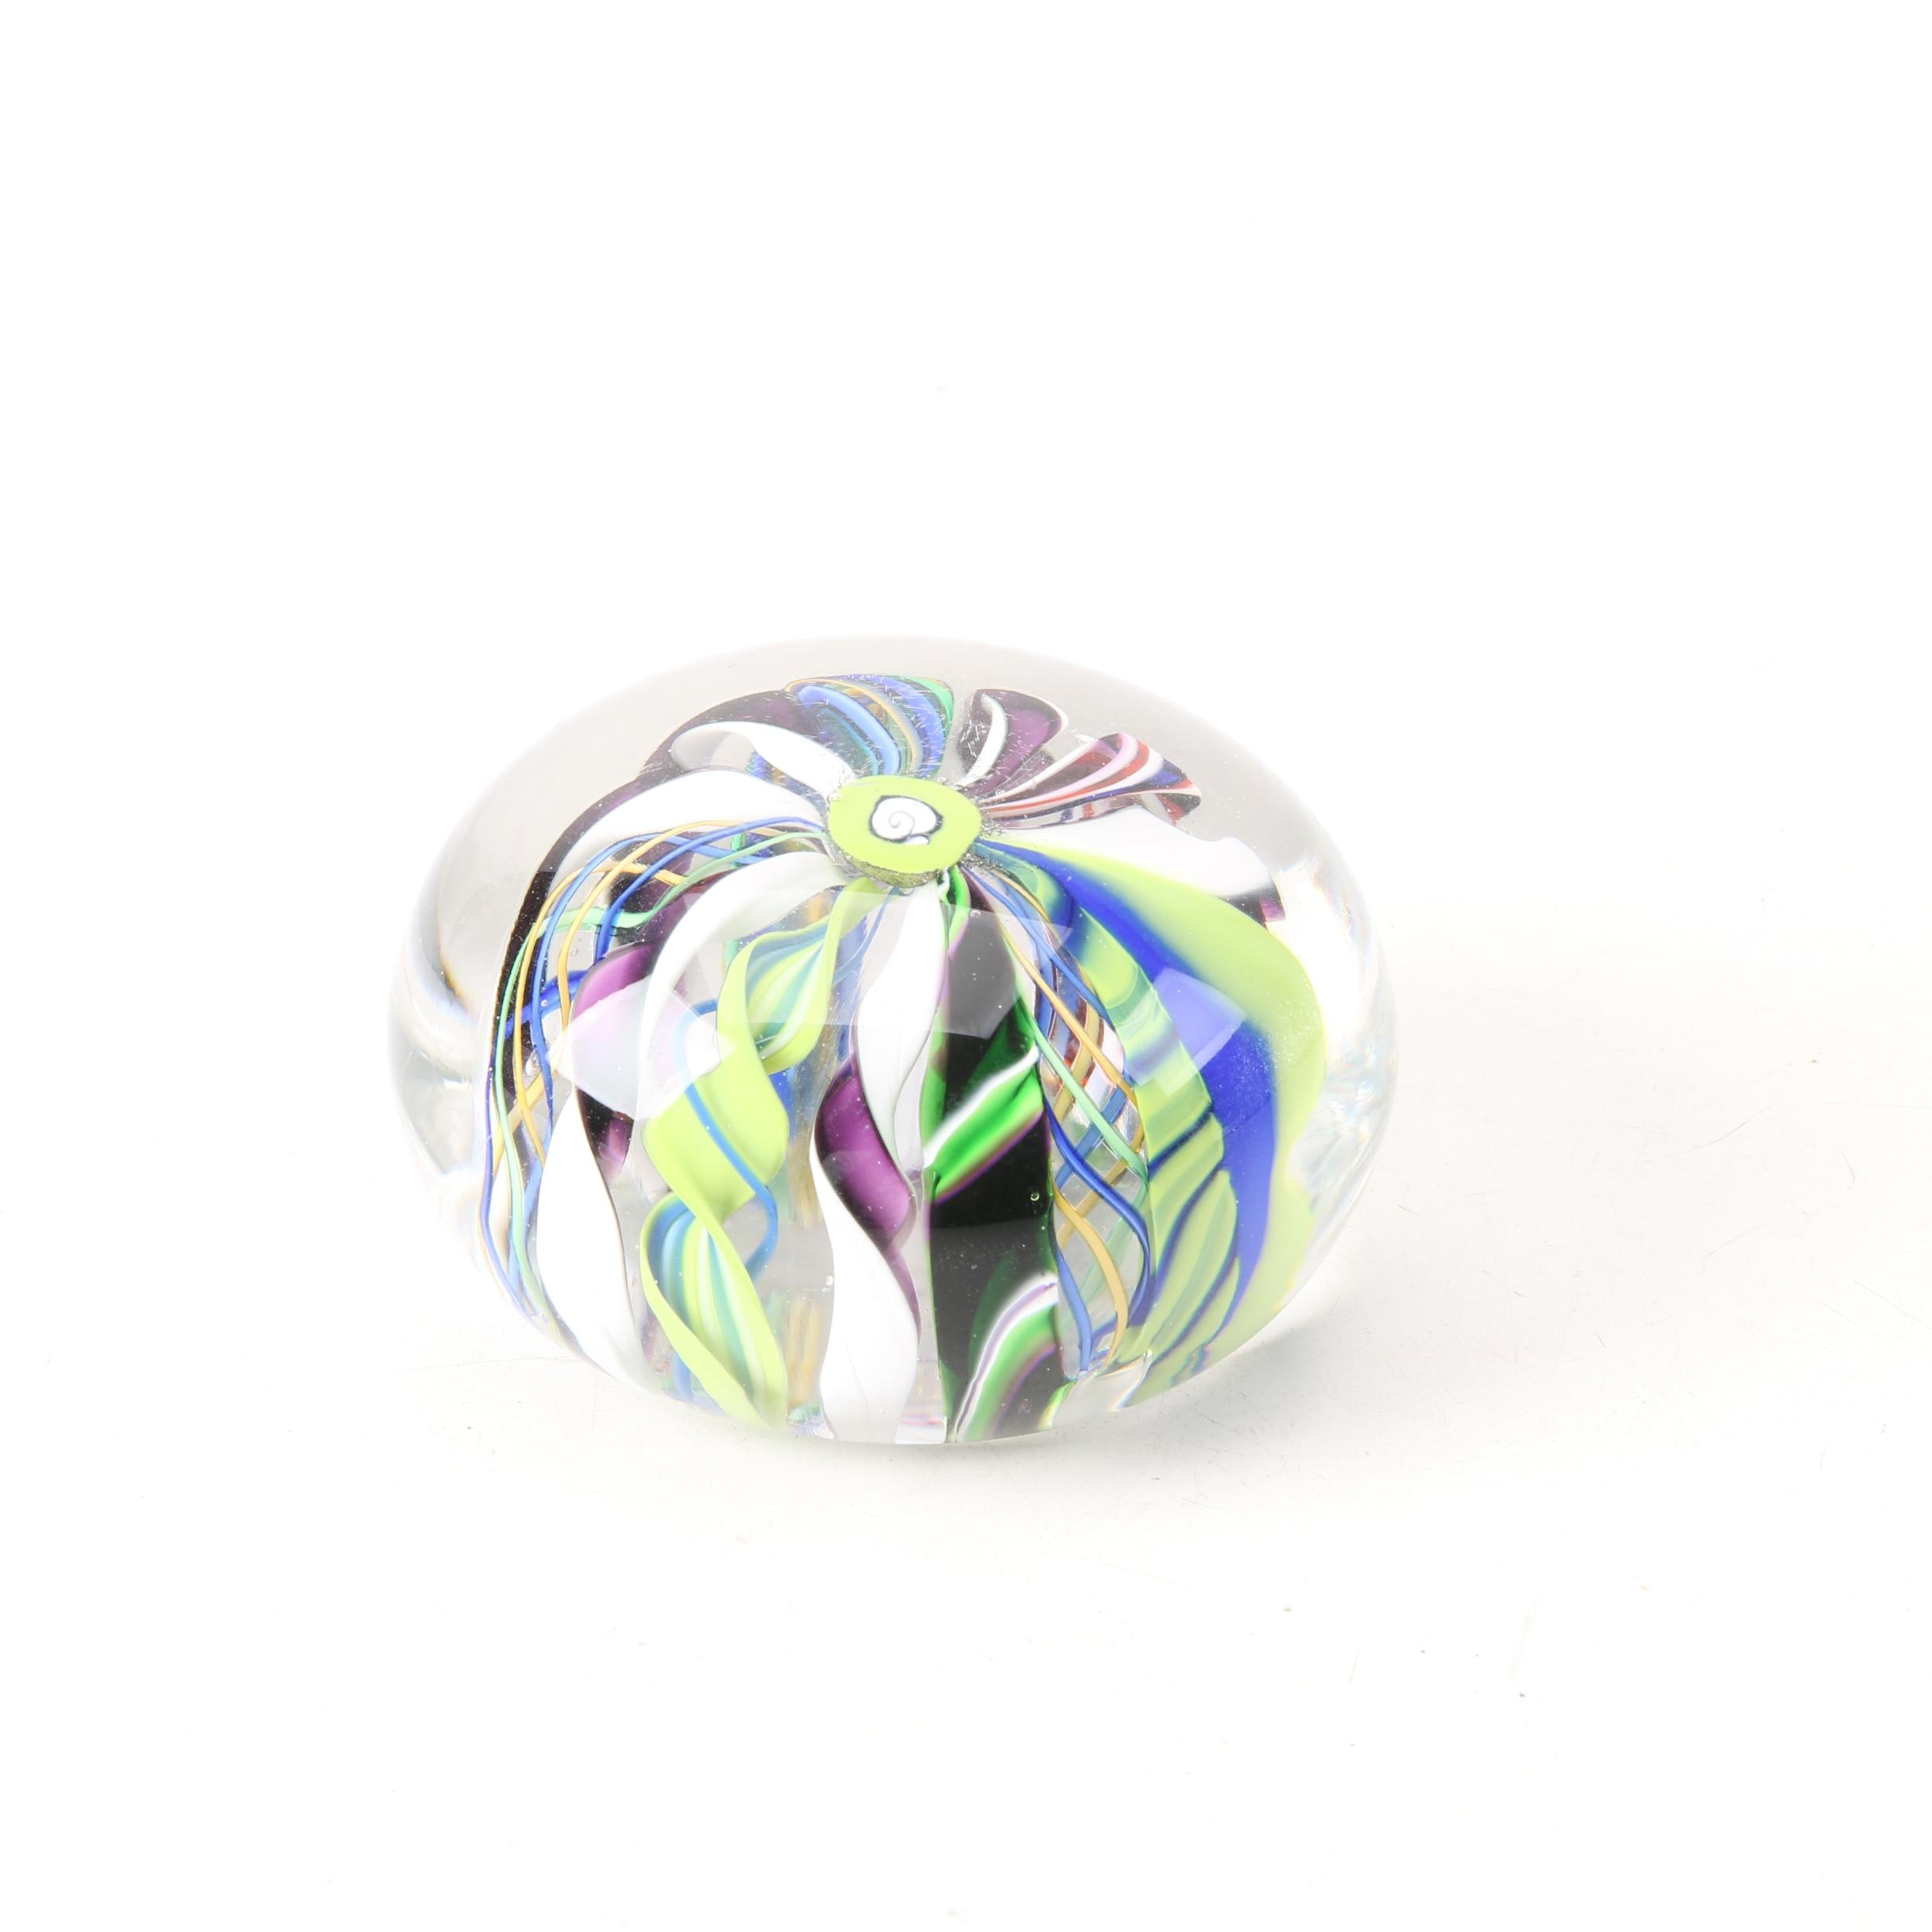 Kelley Art Glass Paperweight with Ribbon Motif